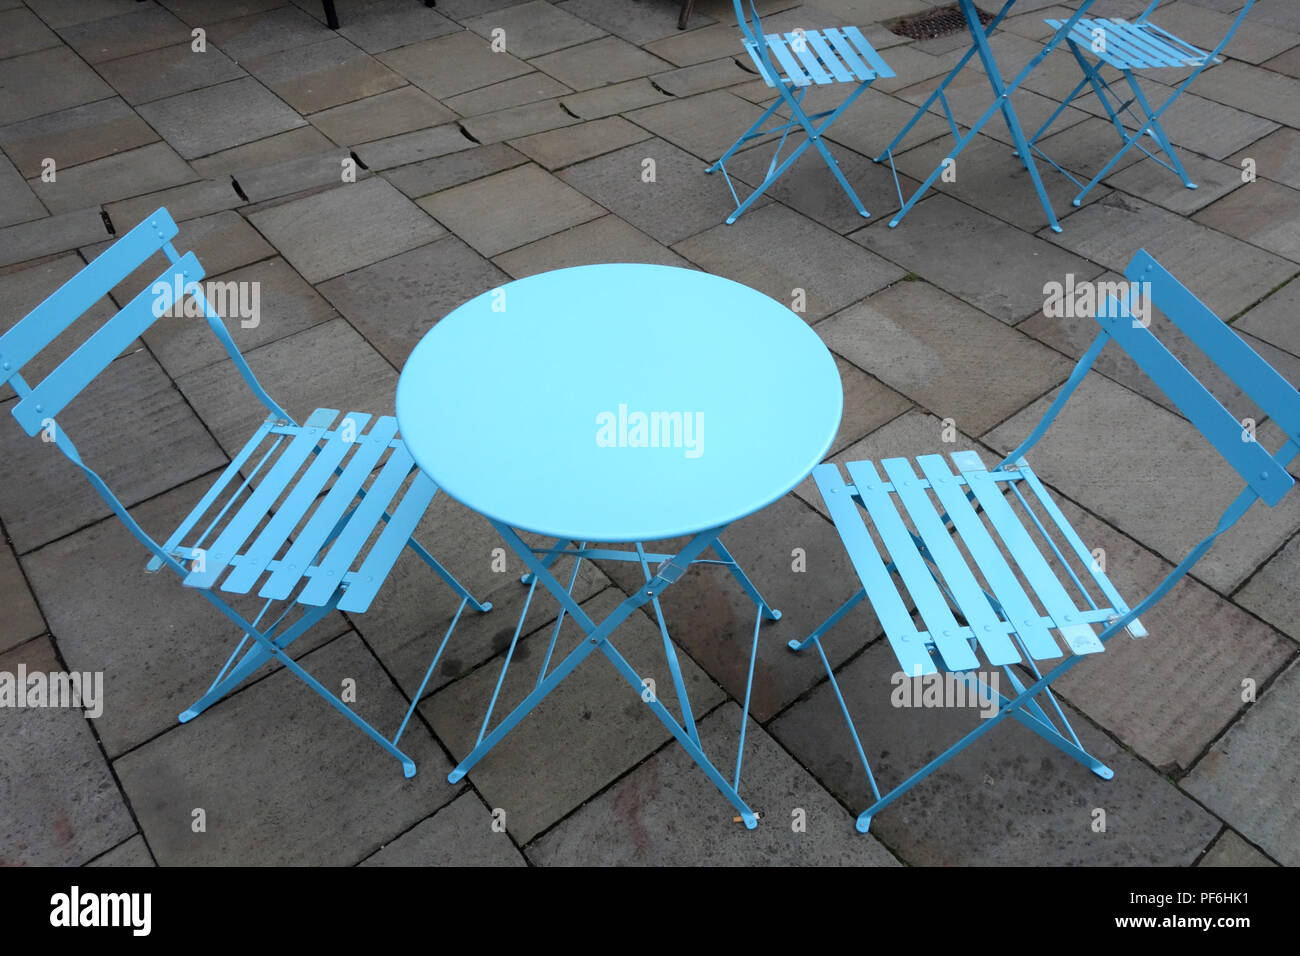 Round blue table and chairs at a Weekly Saturday market with many stalls is held in Warwick town centre, Warwickshire, England - Stock Image